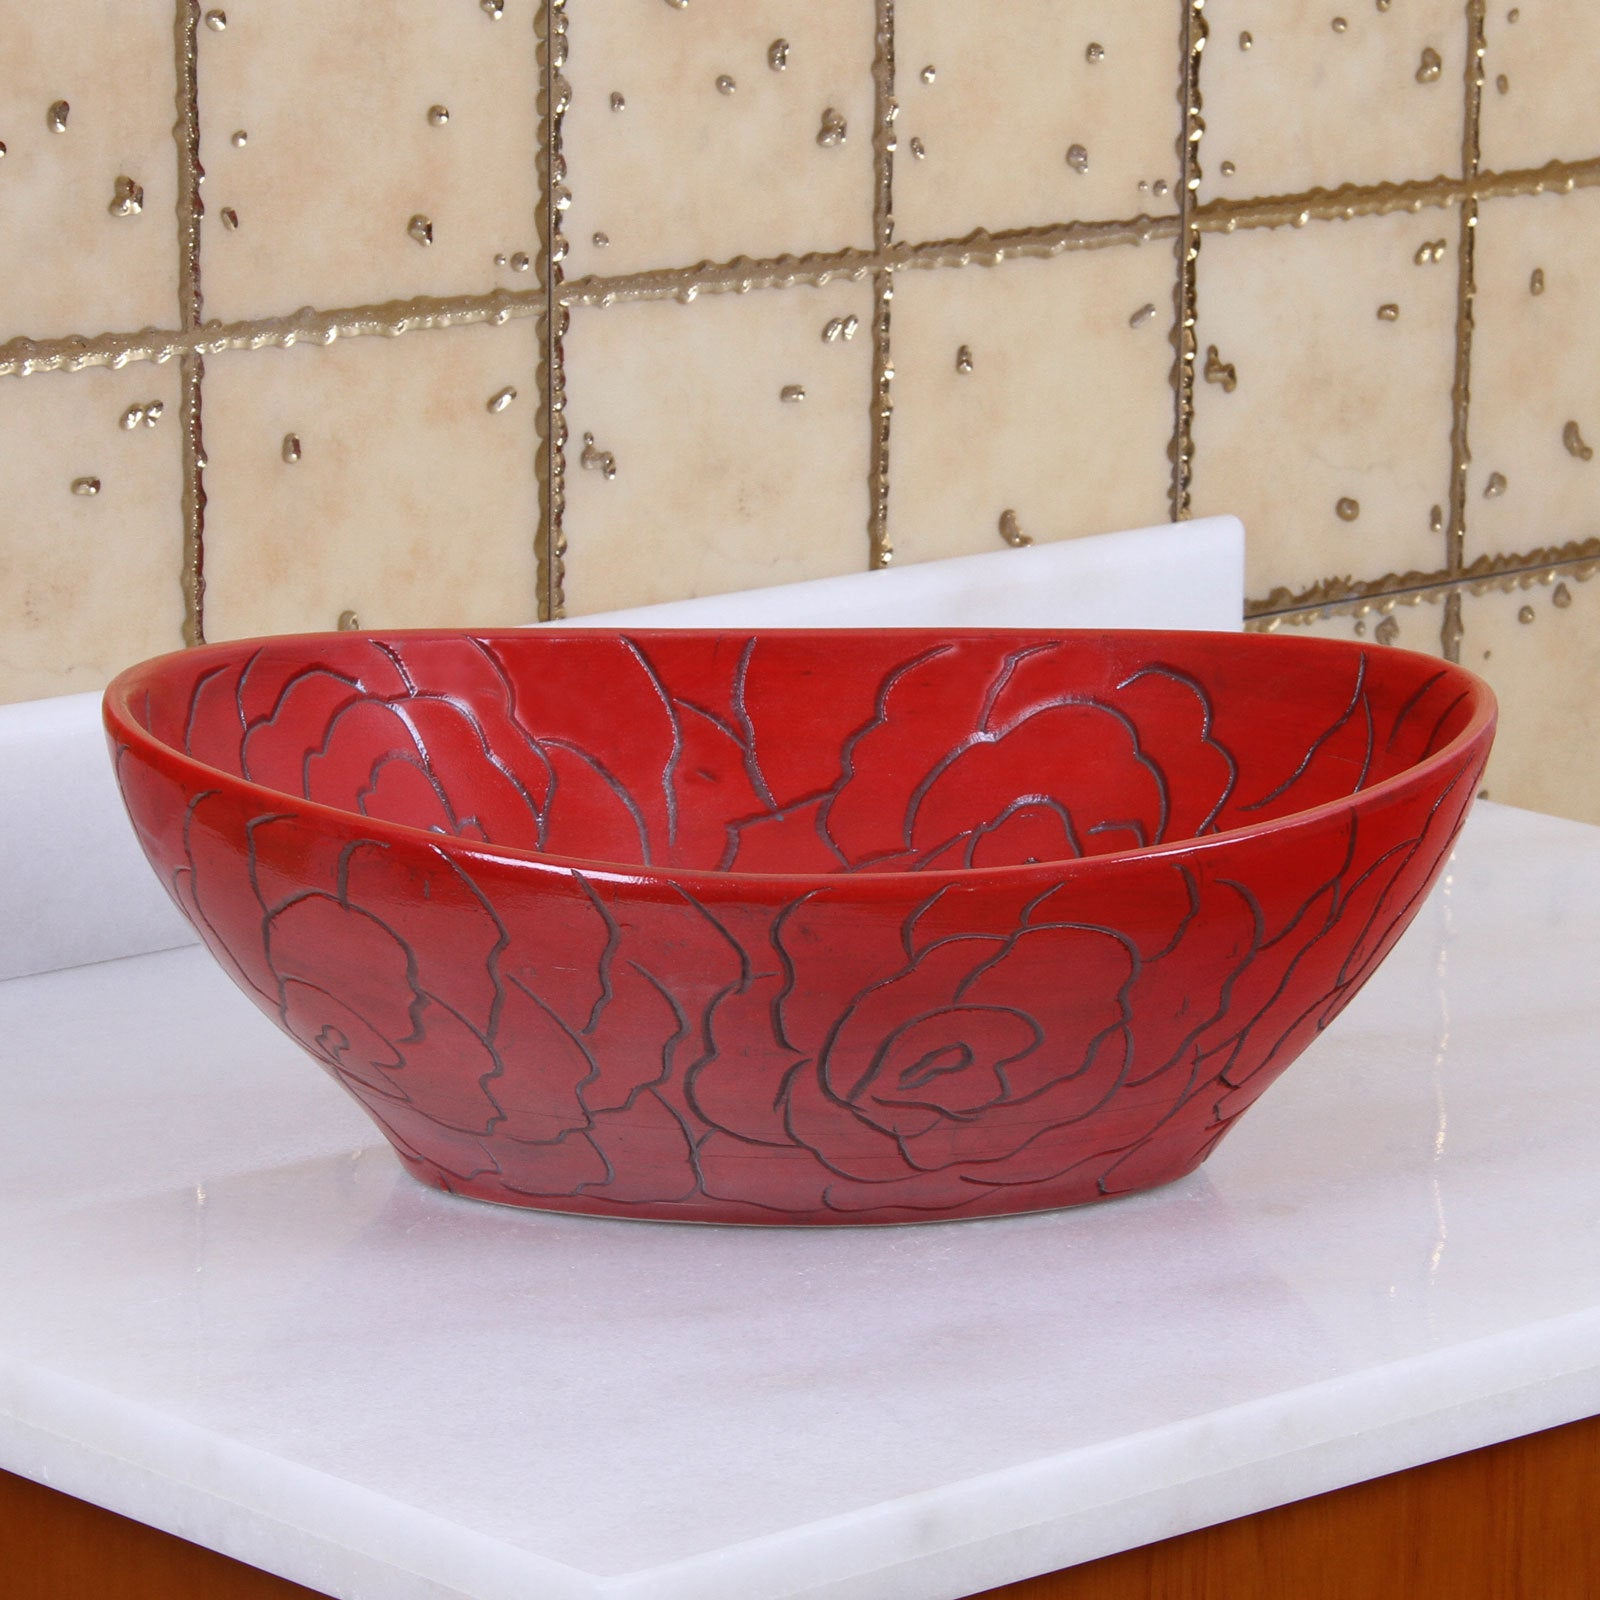 Shop Elite 1557 Oval Red Rose Porcelain Ceramic Bathroom Vessel Sink   Free  Shipping Today   Overstock.com   10421997